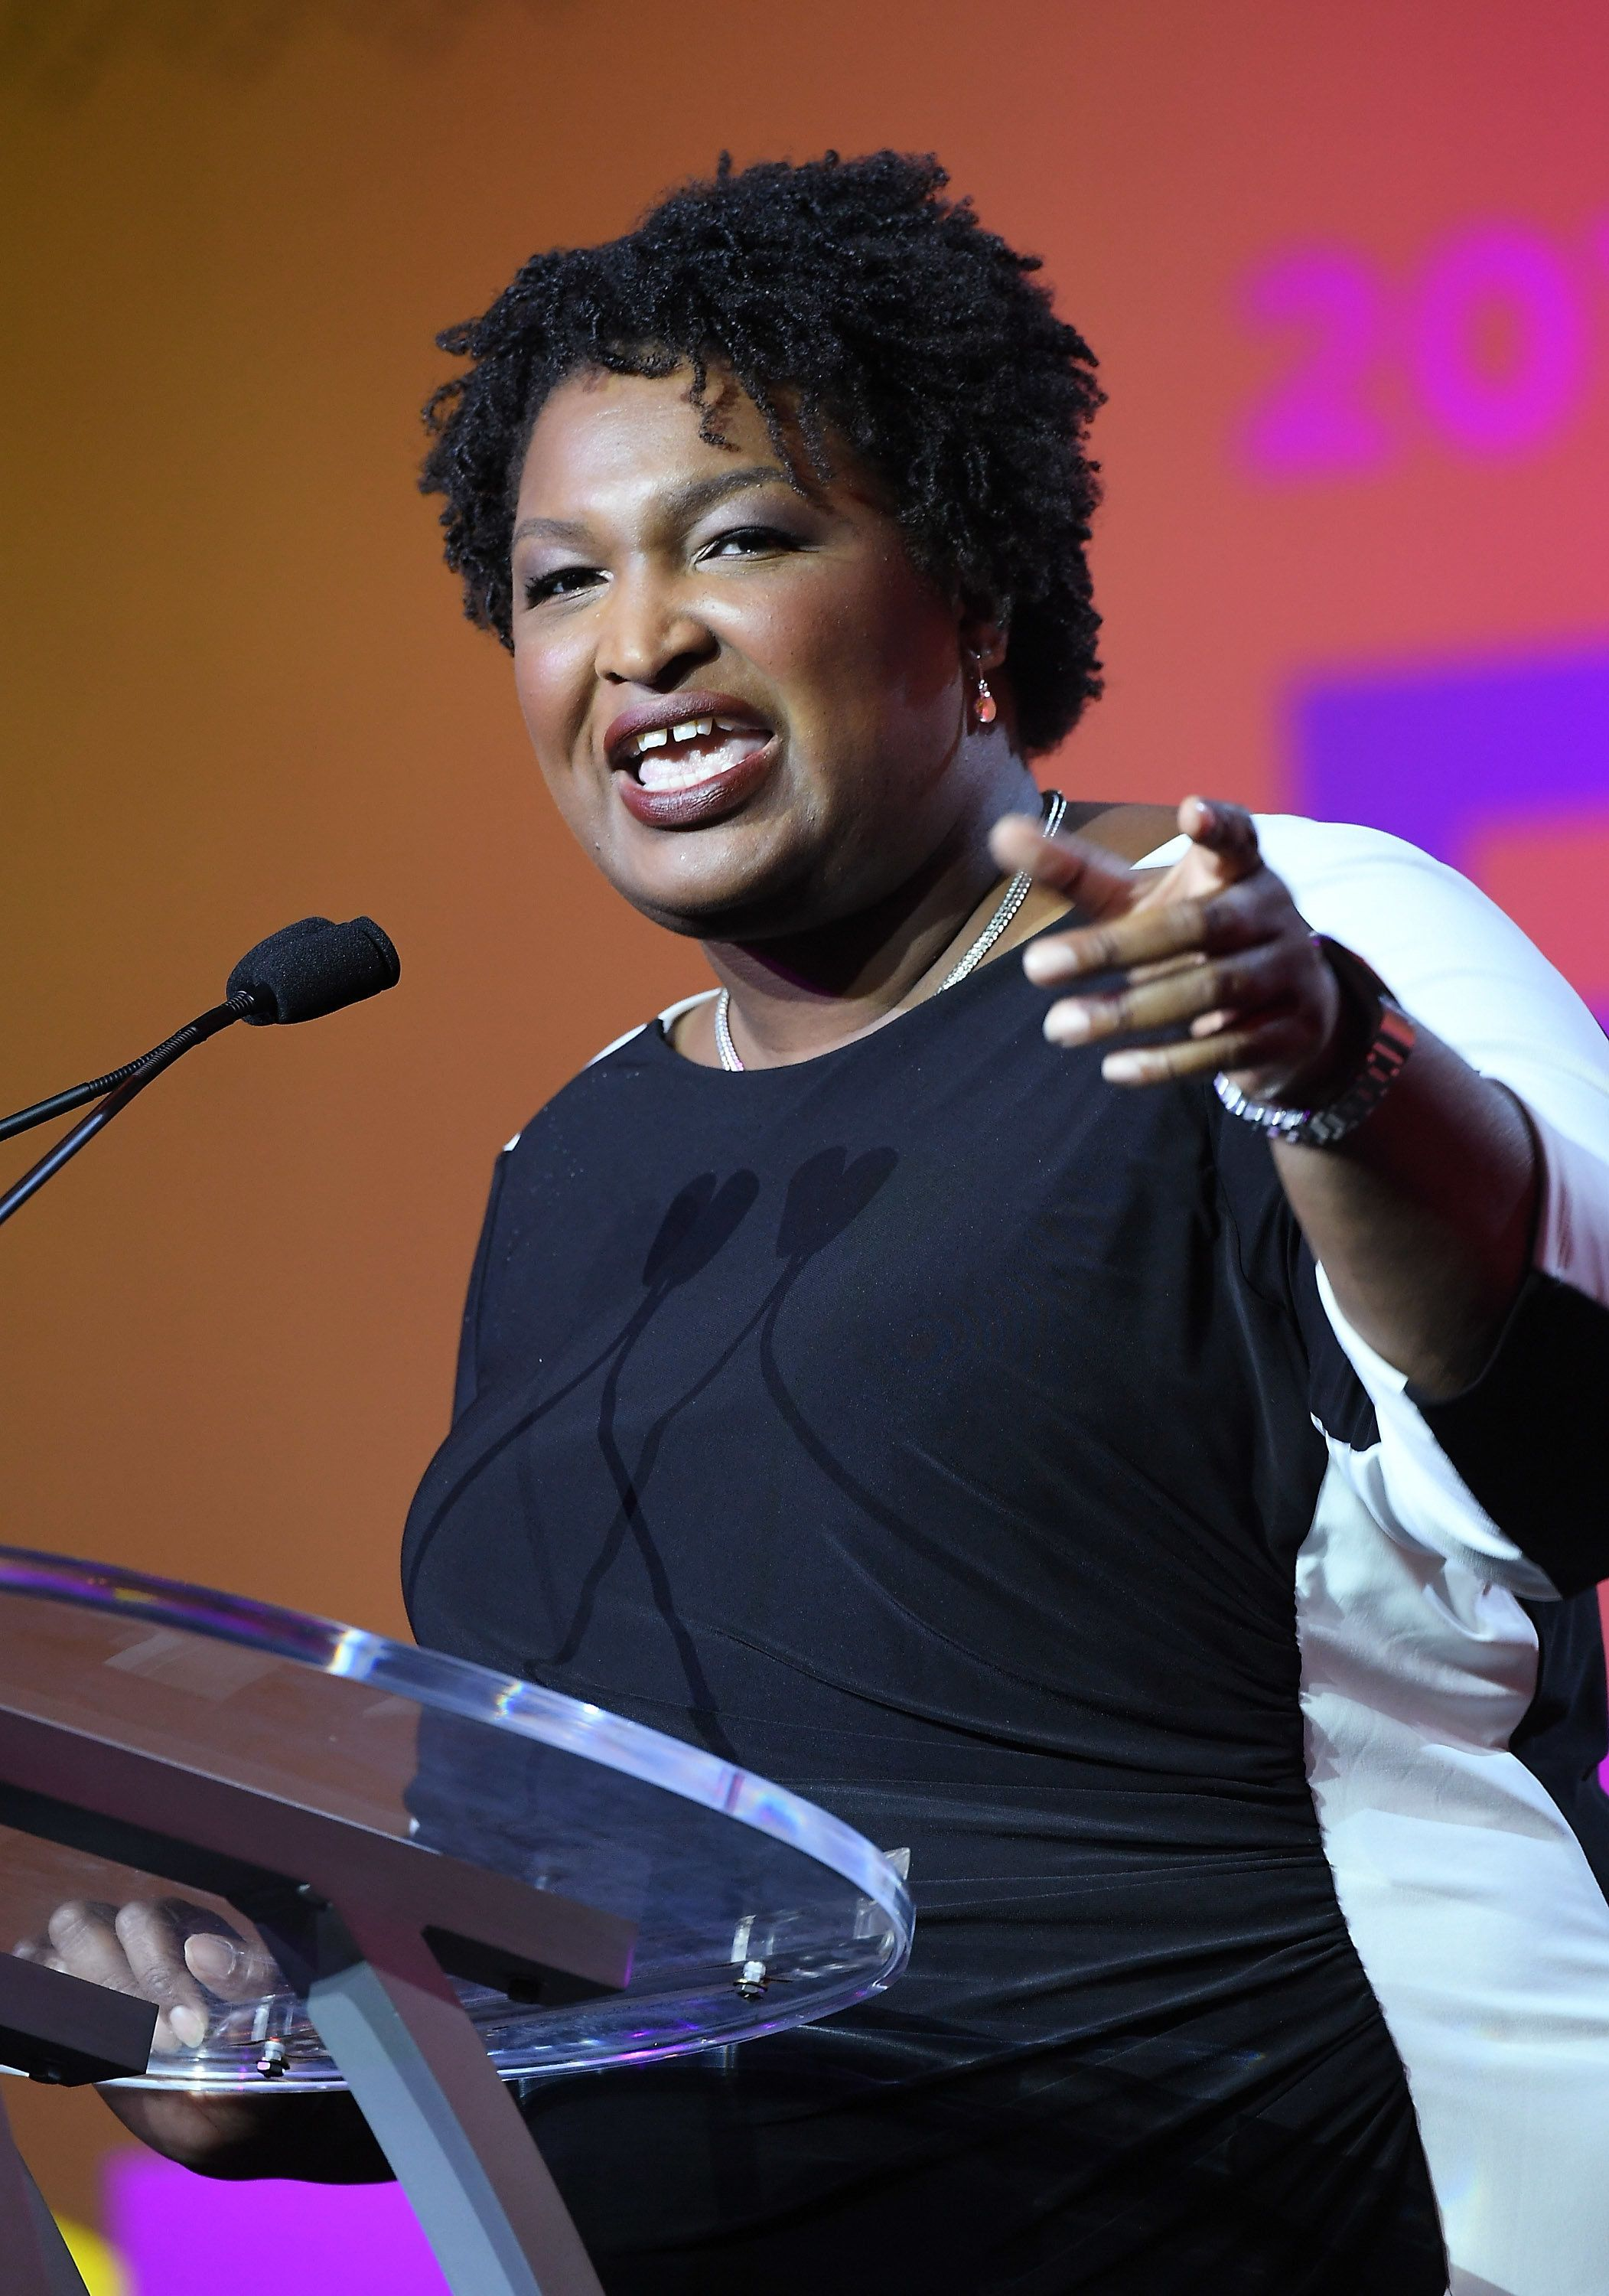 NEW ORLEANS, LA - JULY 07:  Stacey Abrams speaks onstage during the 2018 Essence Festival presented by Coca-Cola at Ernest N. Morial Convention Center on July 7, 2018 in New Orleans, Louisiana.  (Photo by Paras Griffin/Getty Images for Essence)